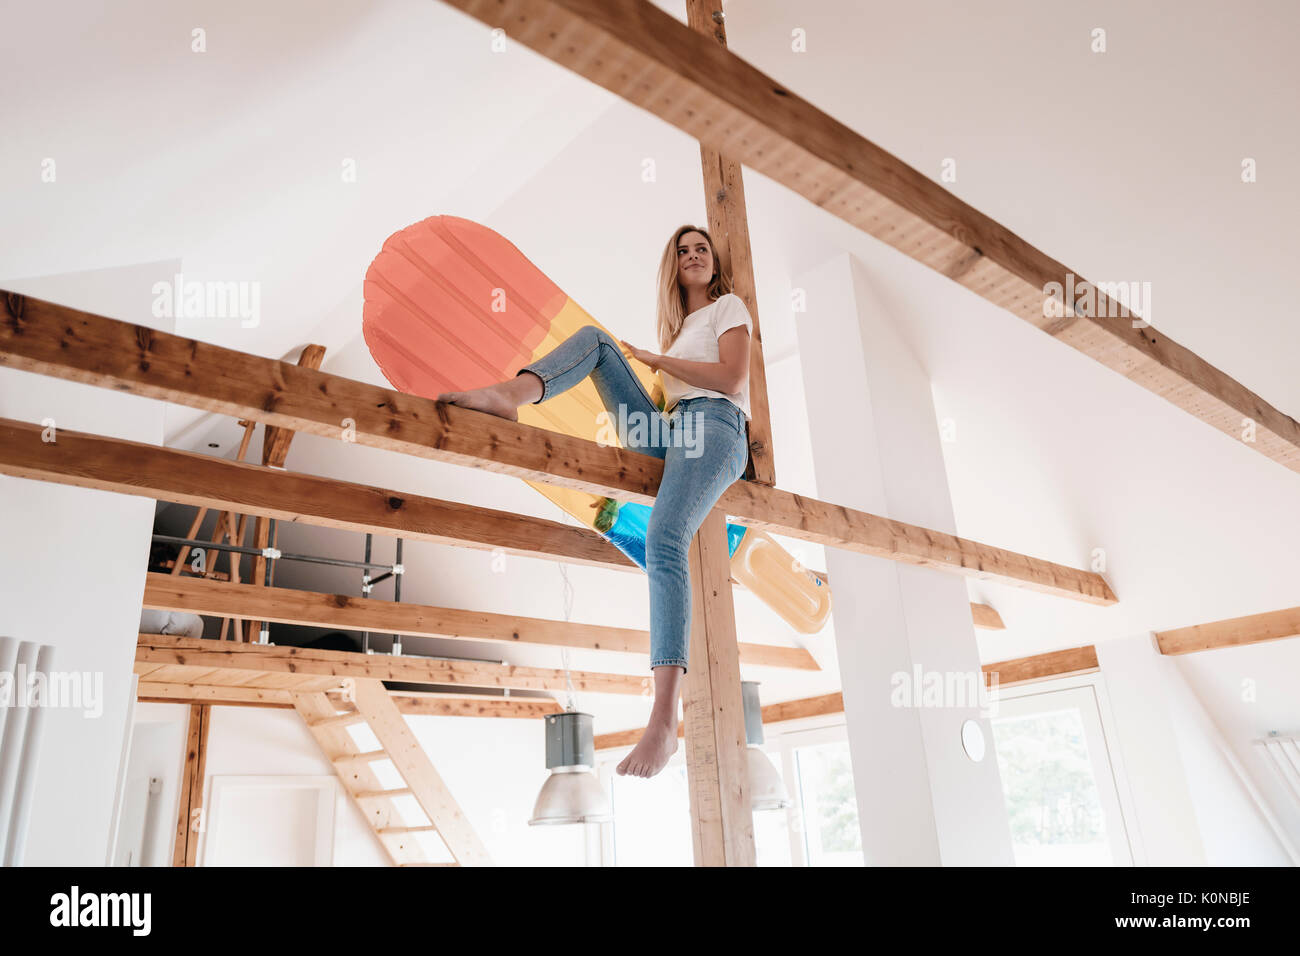 ceiling joist stock photos & ceiling joist stock images - alamy